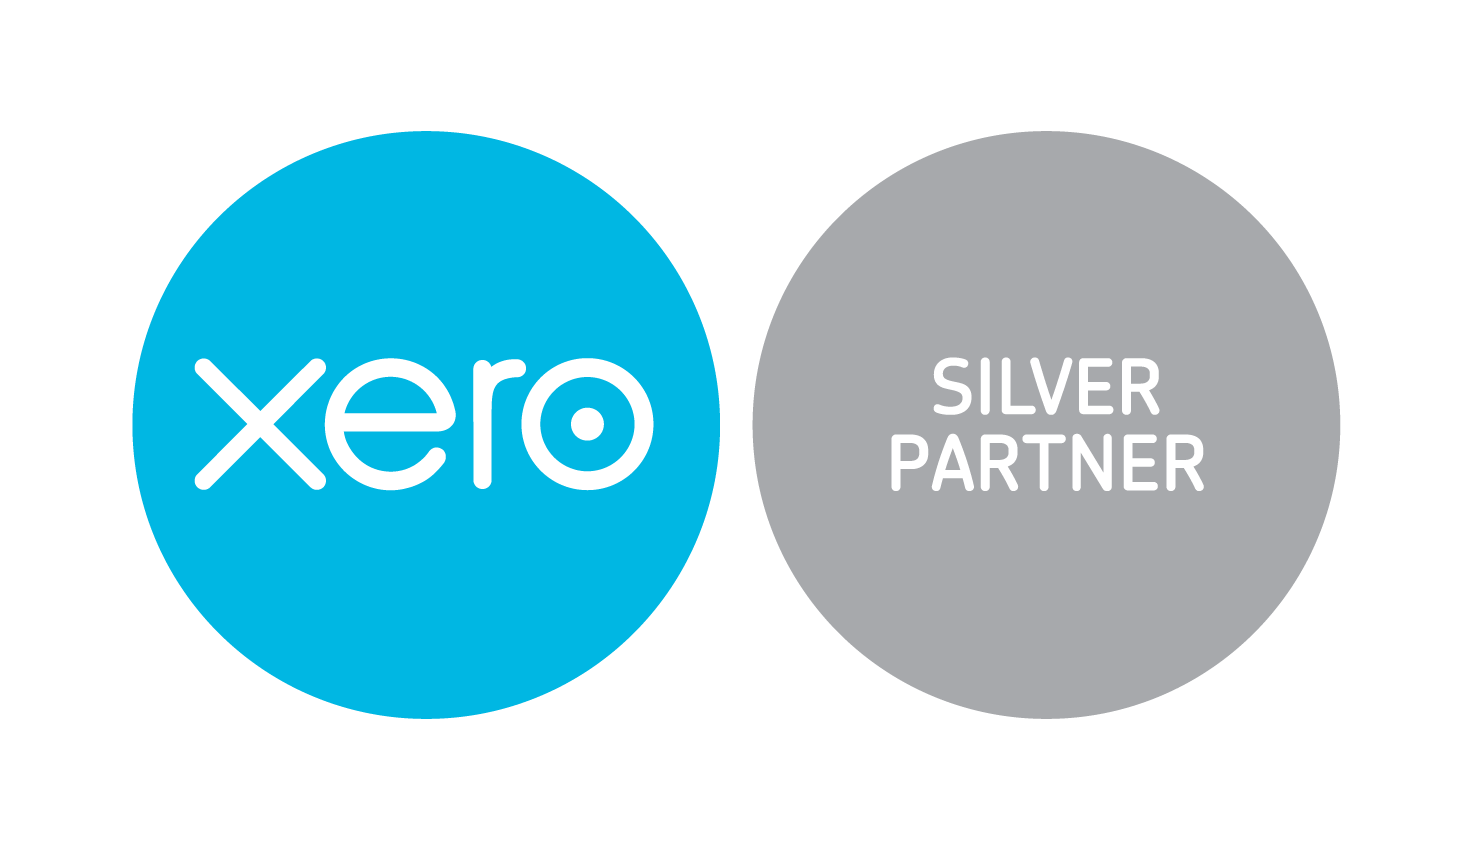 GP CPA c1748c 5b2834344a904cf89e7fc4e2d915e63e 1 » Certified Public Accountant using Xero, Avalara and Gusto to make your payroll and taxes easier, serving in North Carolina and South Carolina